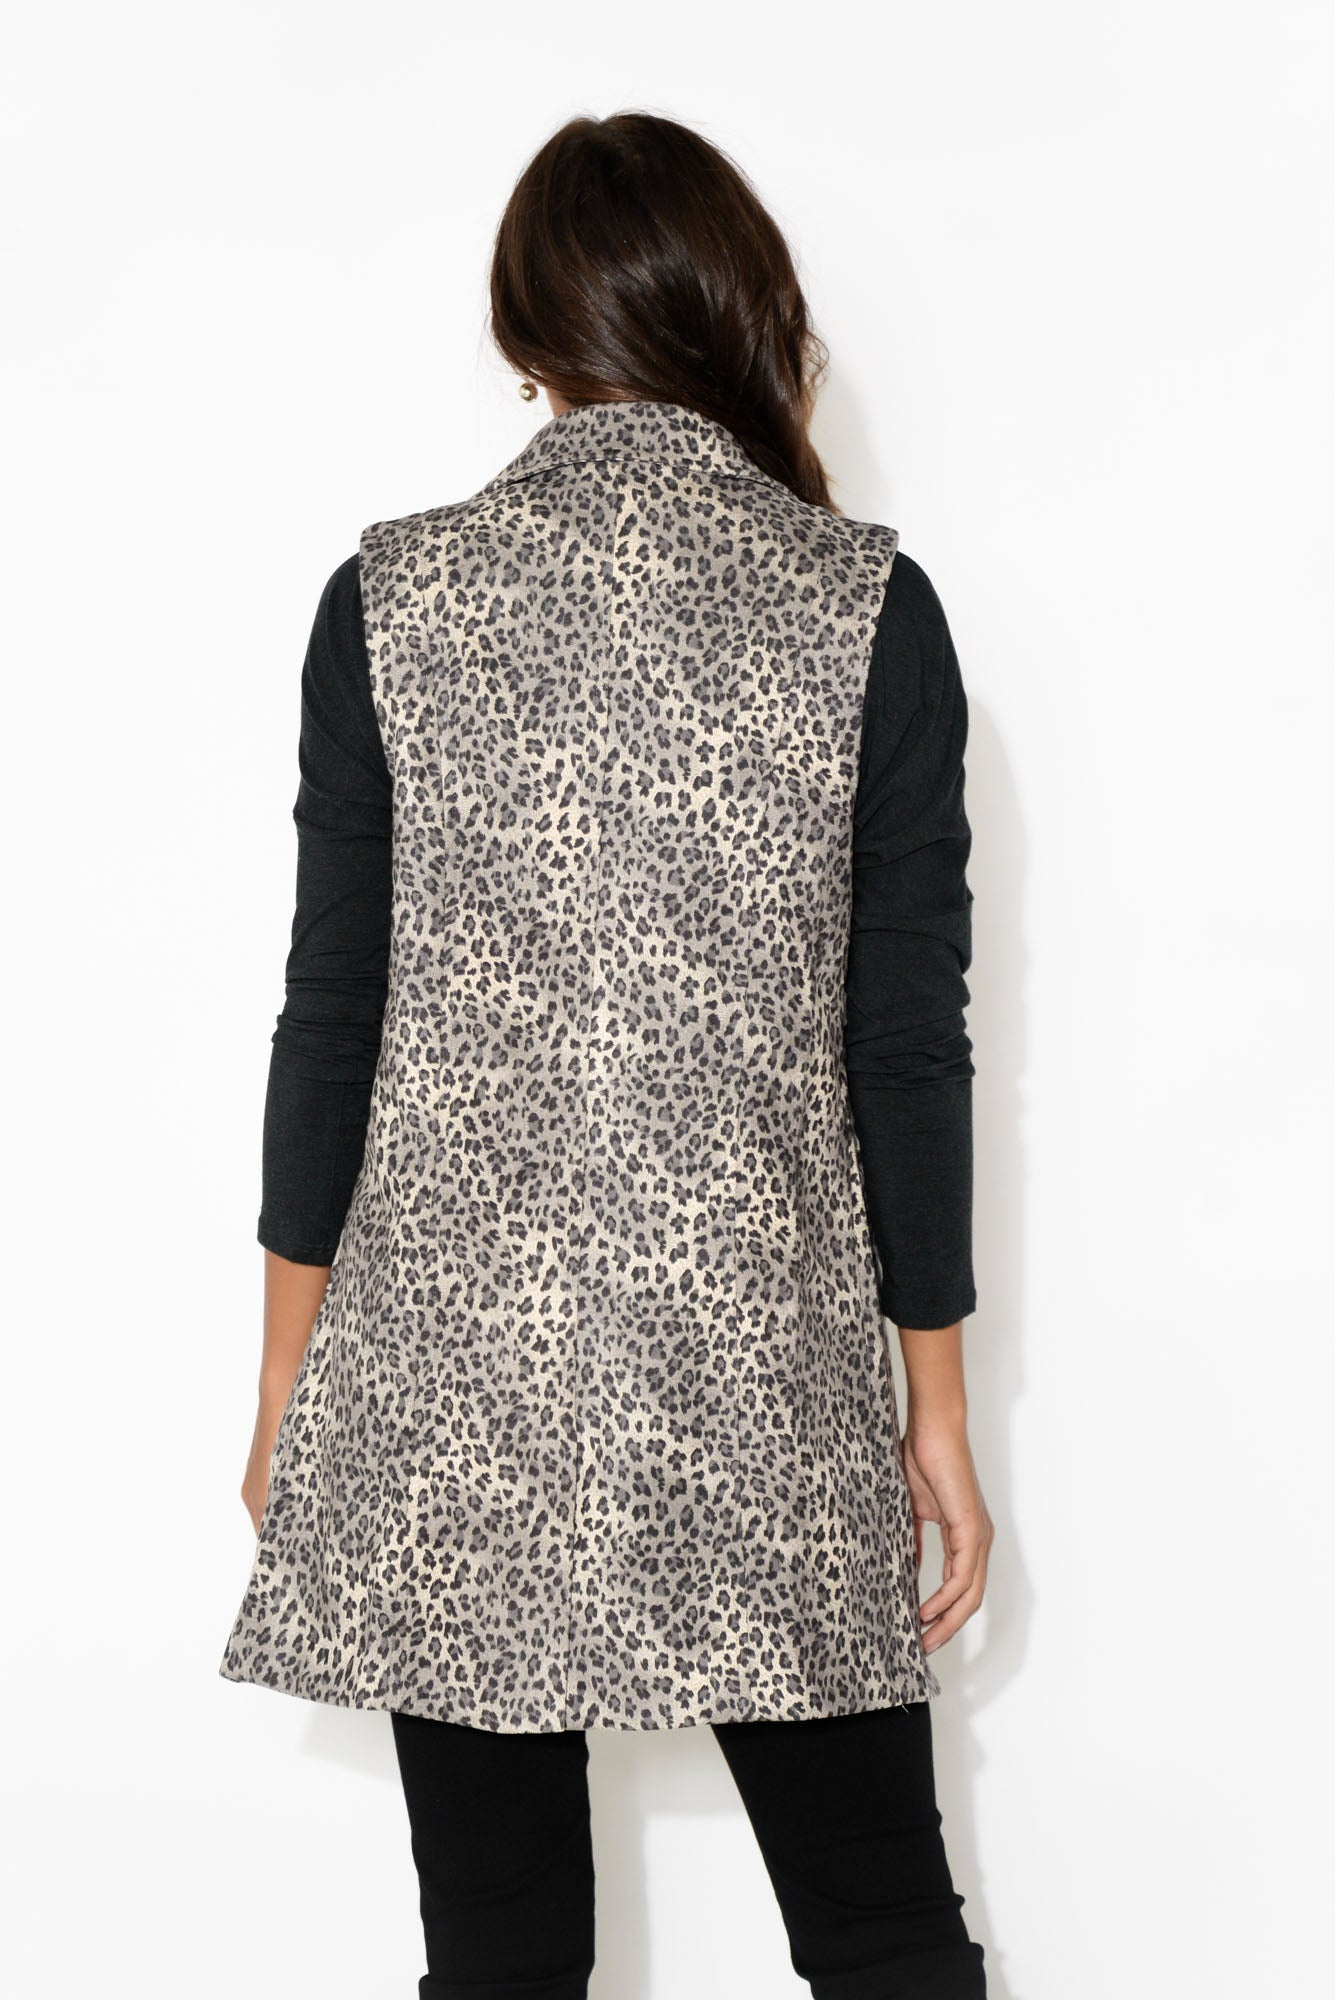 Belle Grey Leopard Sleeveless Jacket